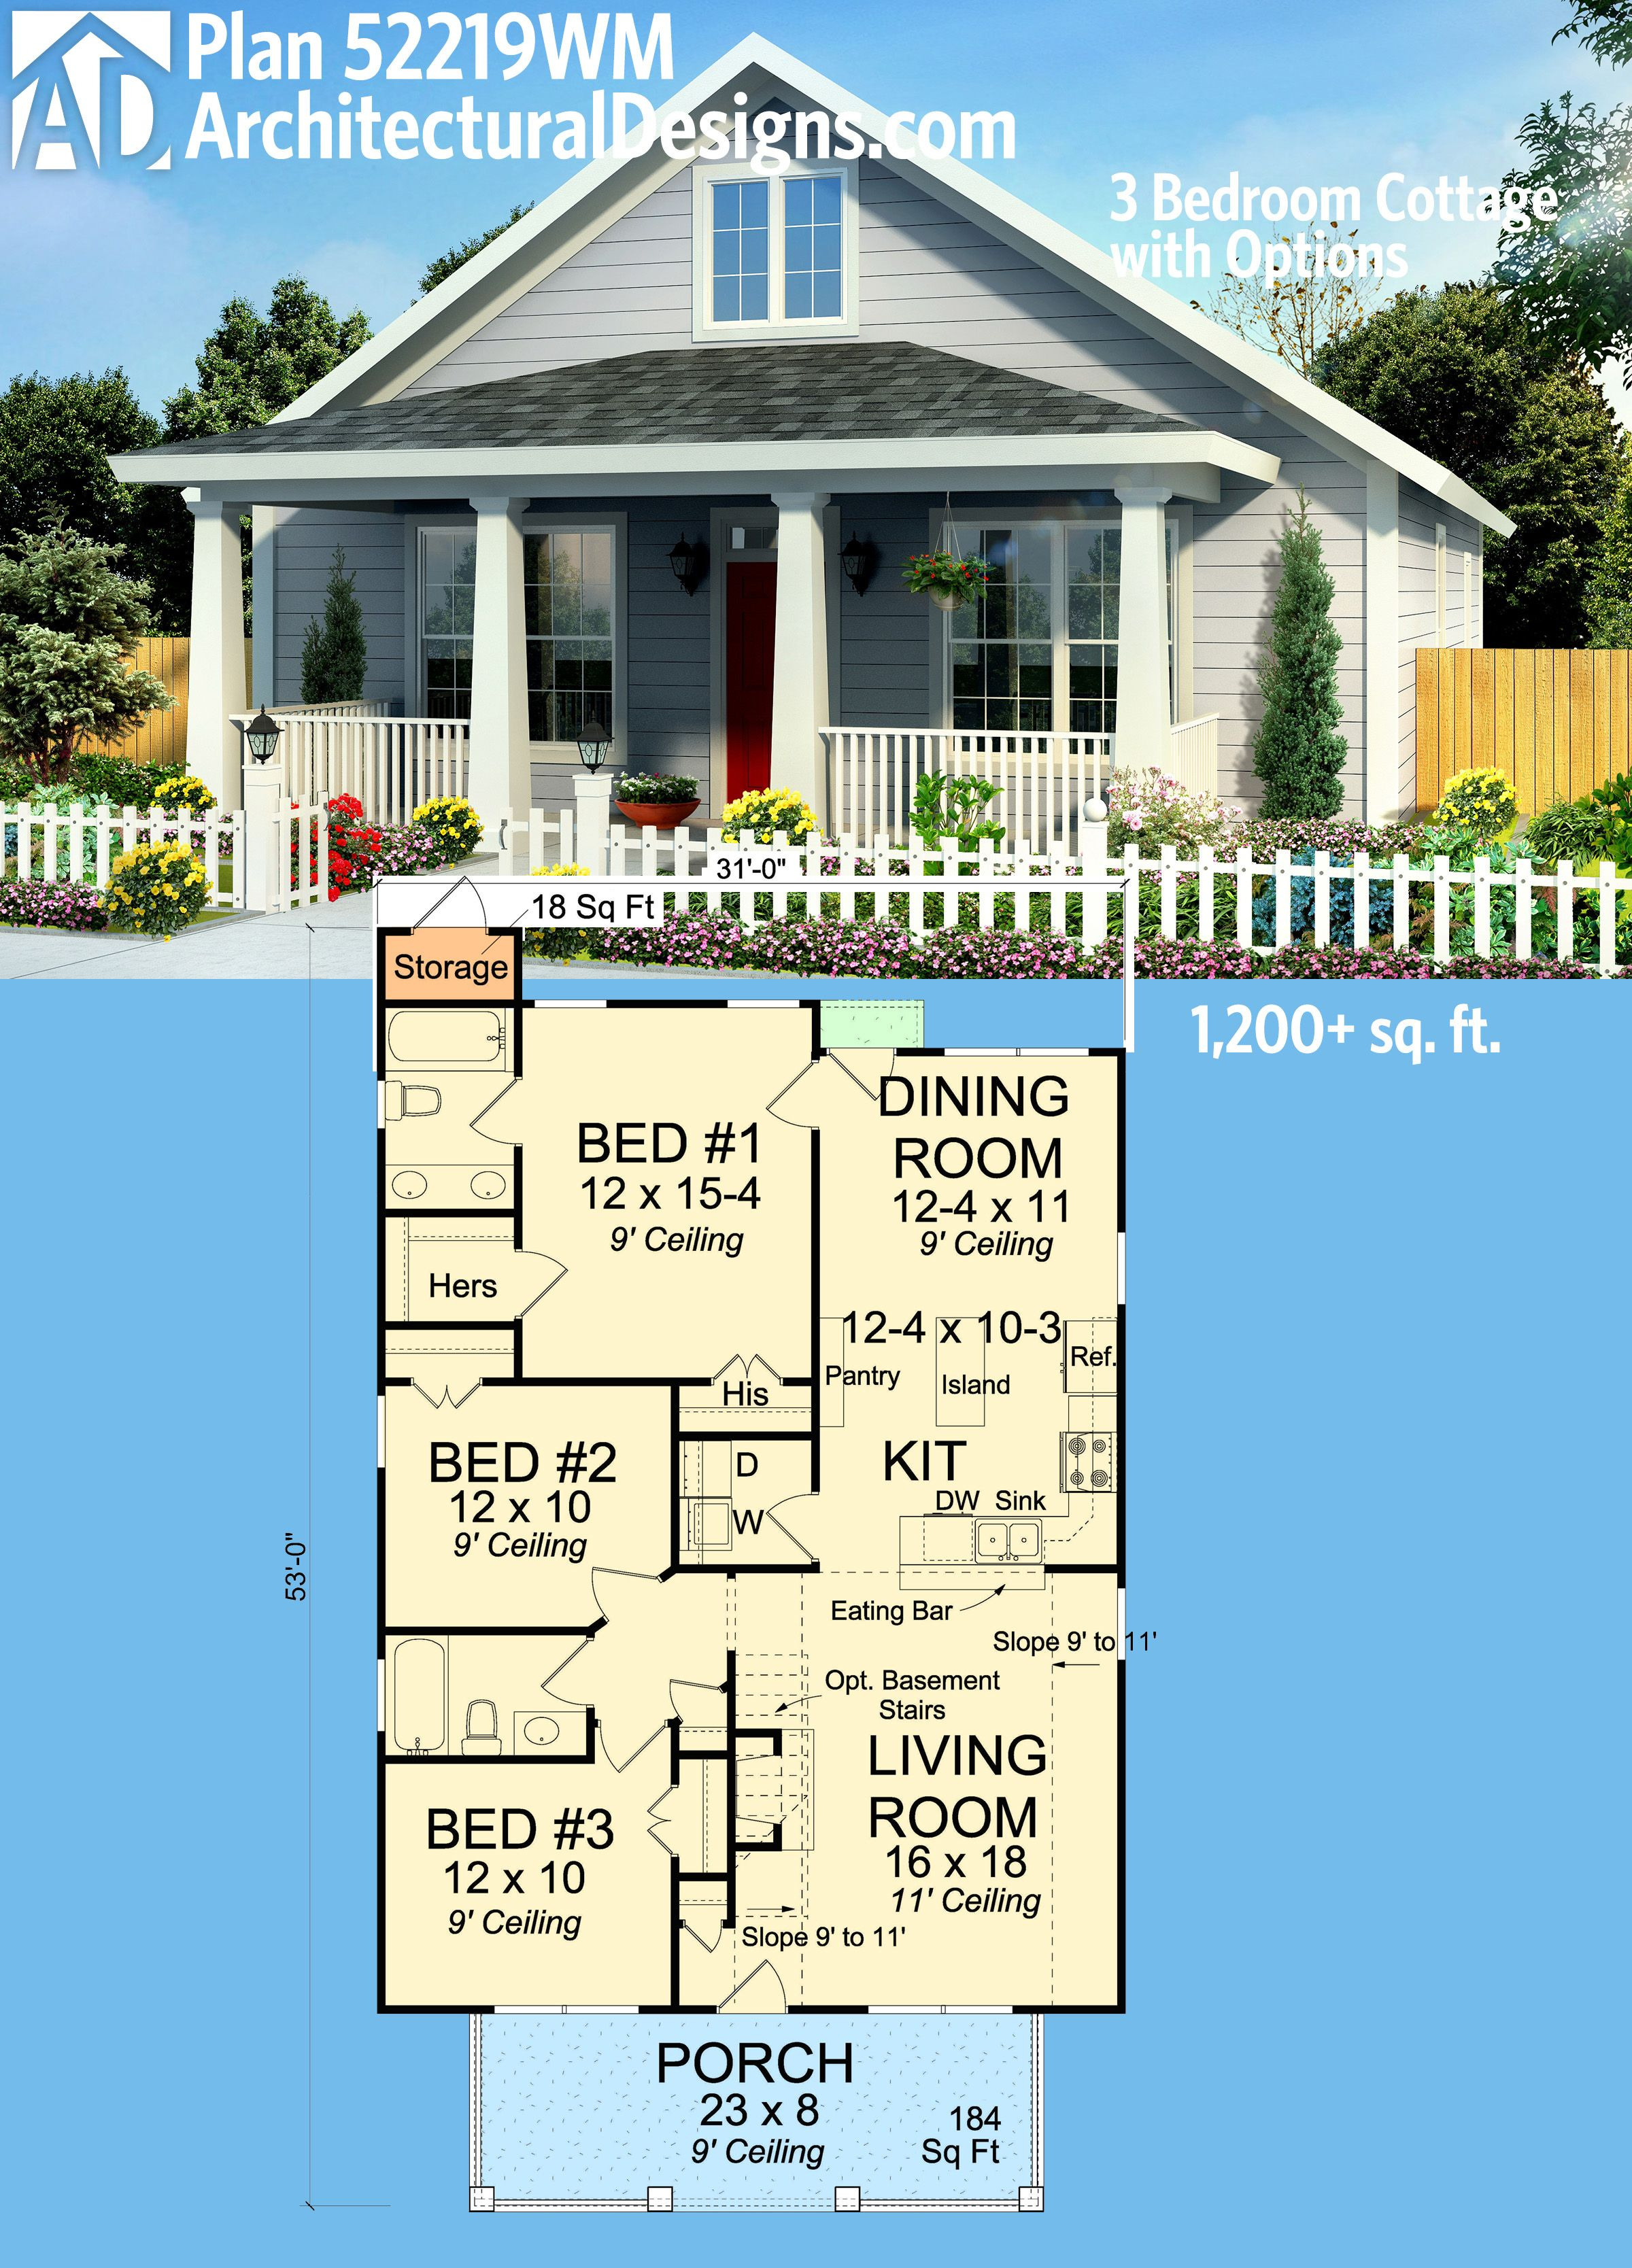 Cost to Build 1200 Sq Ft Home Unique Plan Wm 3 Bedroom Cottage with Options